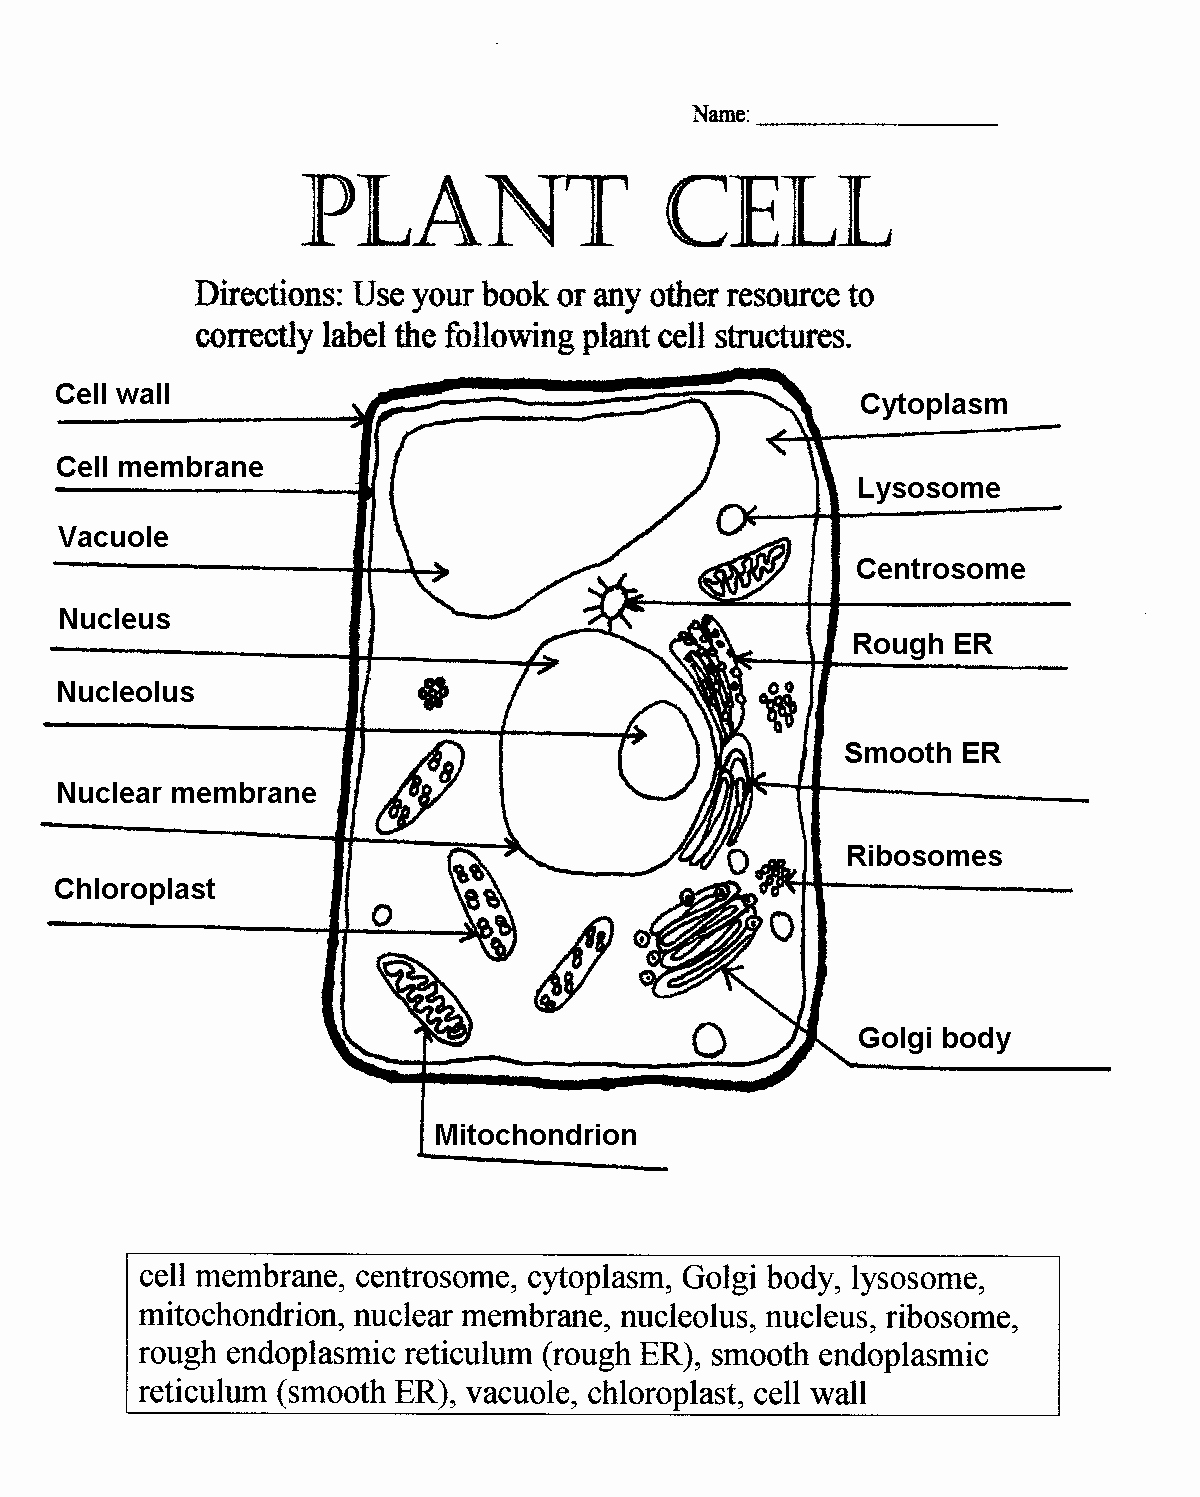 Animal and Plant Cells Worksheet Unique Plant Cell Parts Worksheet with Word Bank